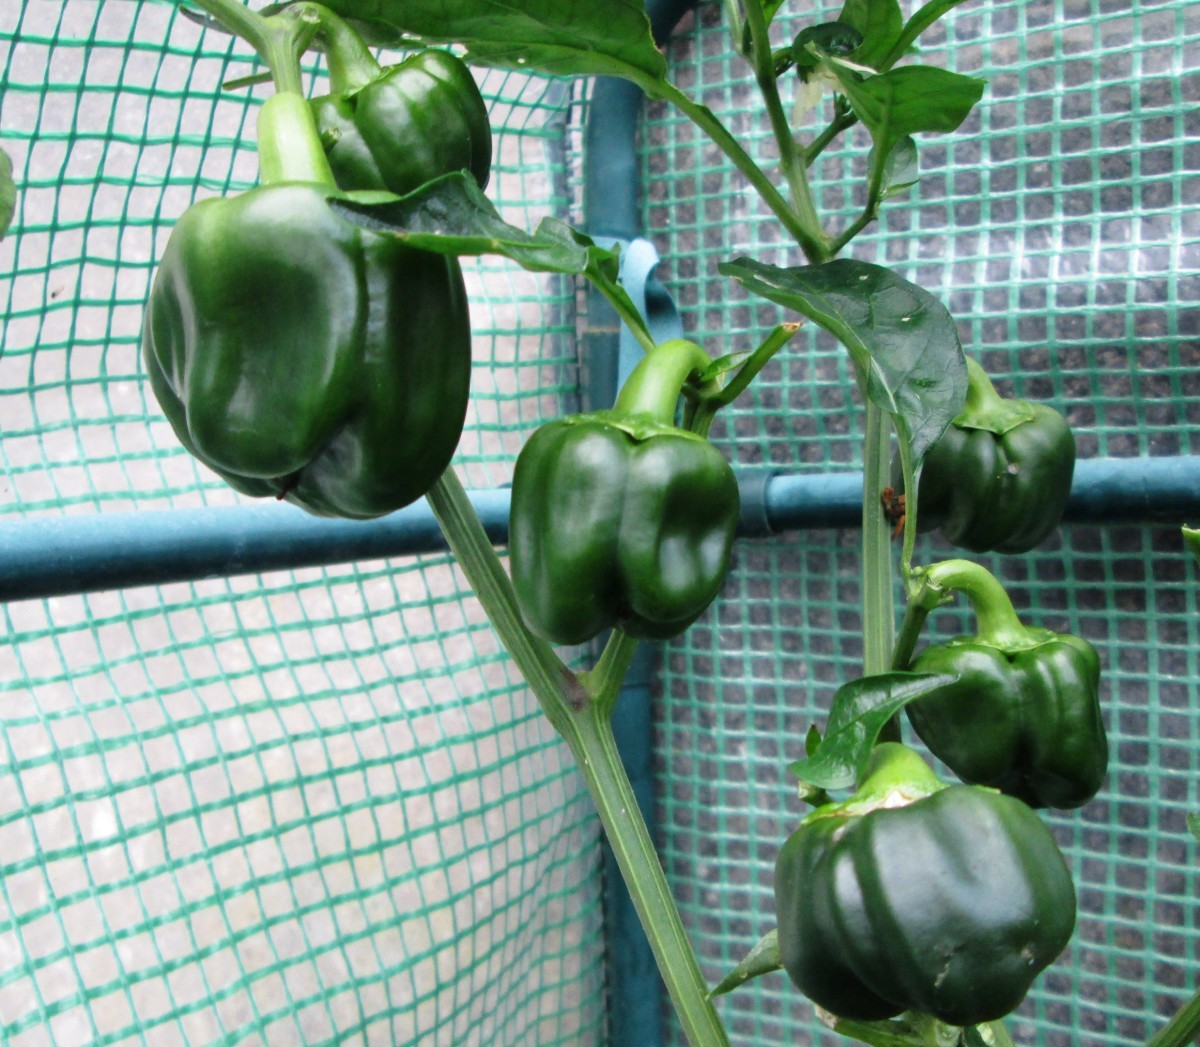 Growing, Planting and Harvesting Sweet Bell Peppers